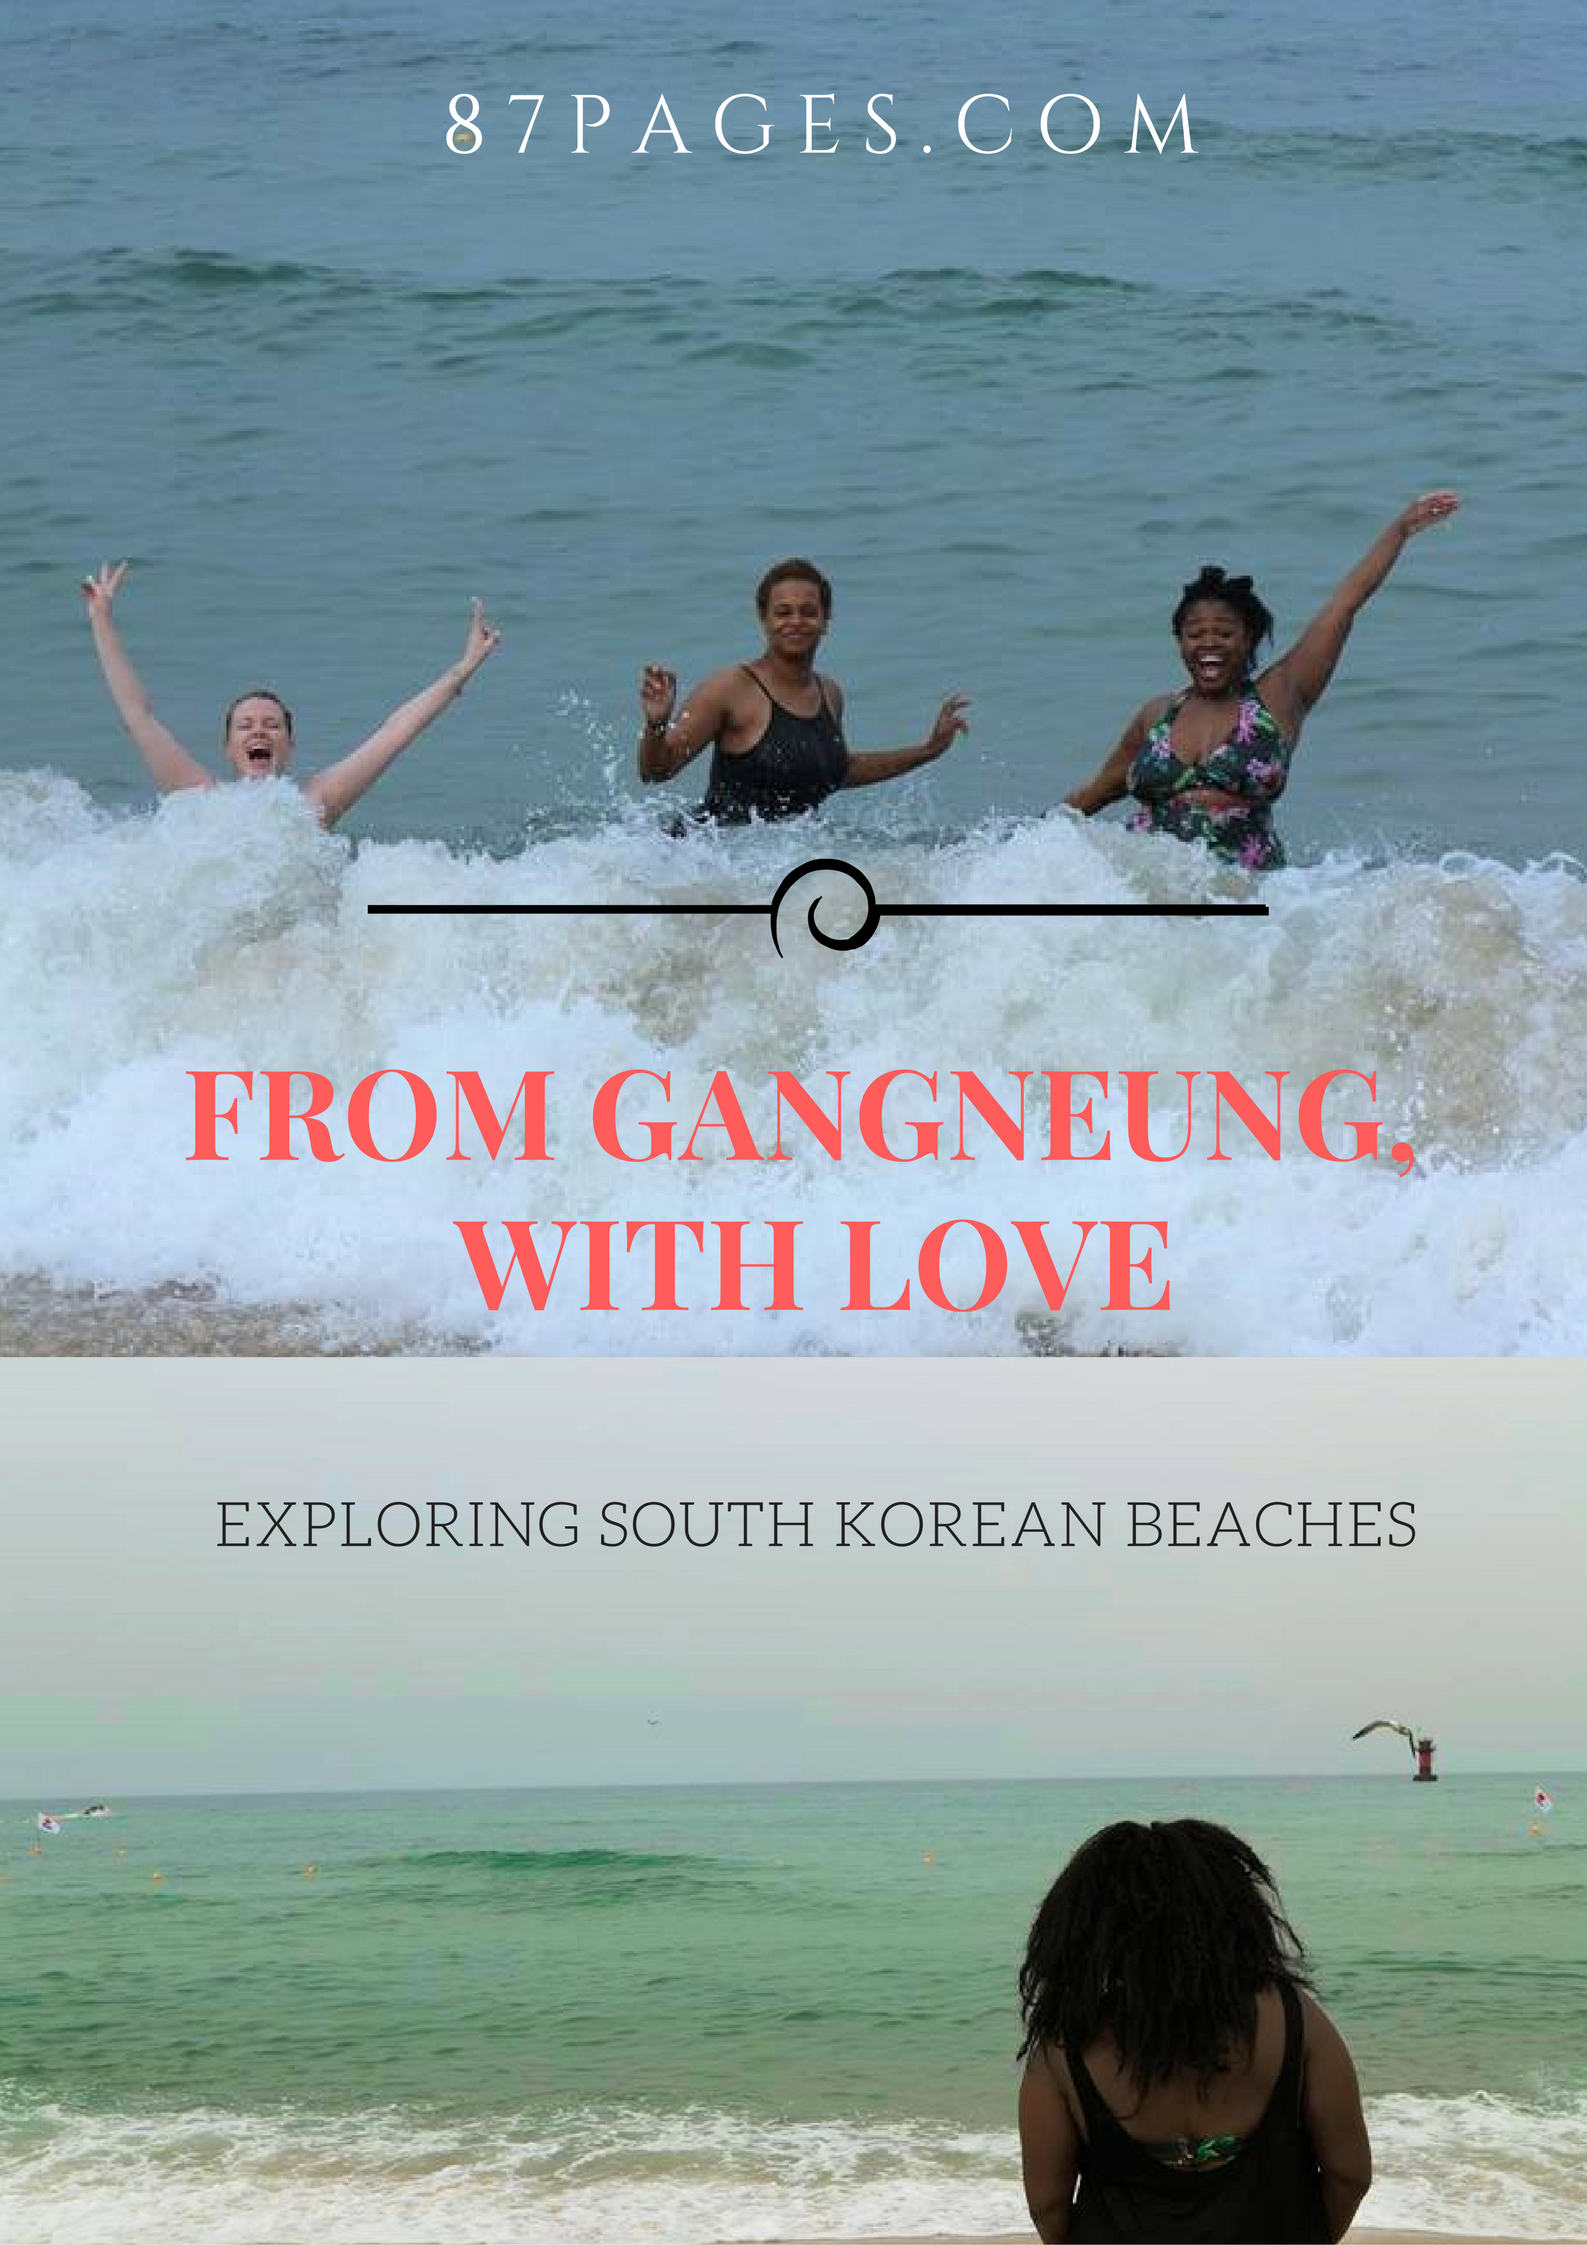 South Korea's coastal city Gangneung, is the perfect place to explore Korean beaches for a weekend trip from Seoul. I had an awesome time with my gal pals frolicking on the beach. Read more about it on the blog. www.87pages.com